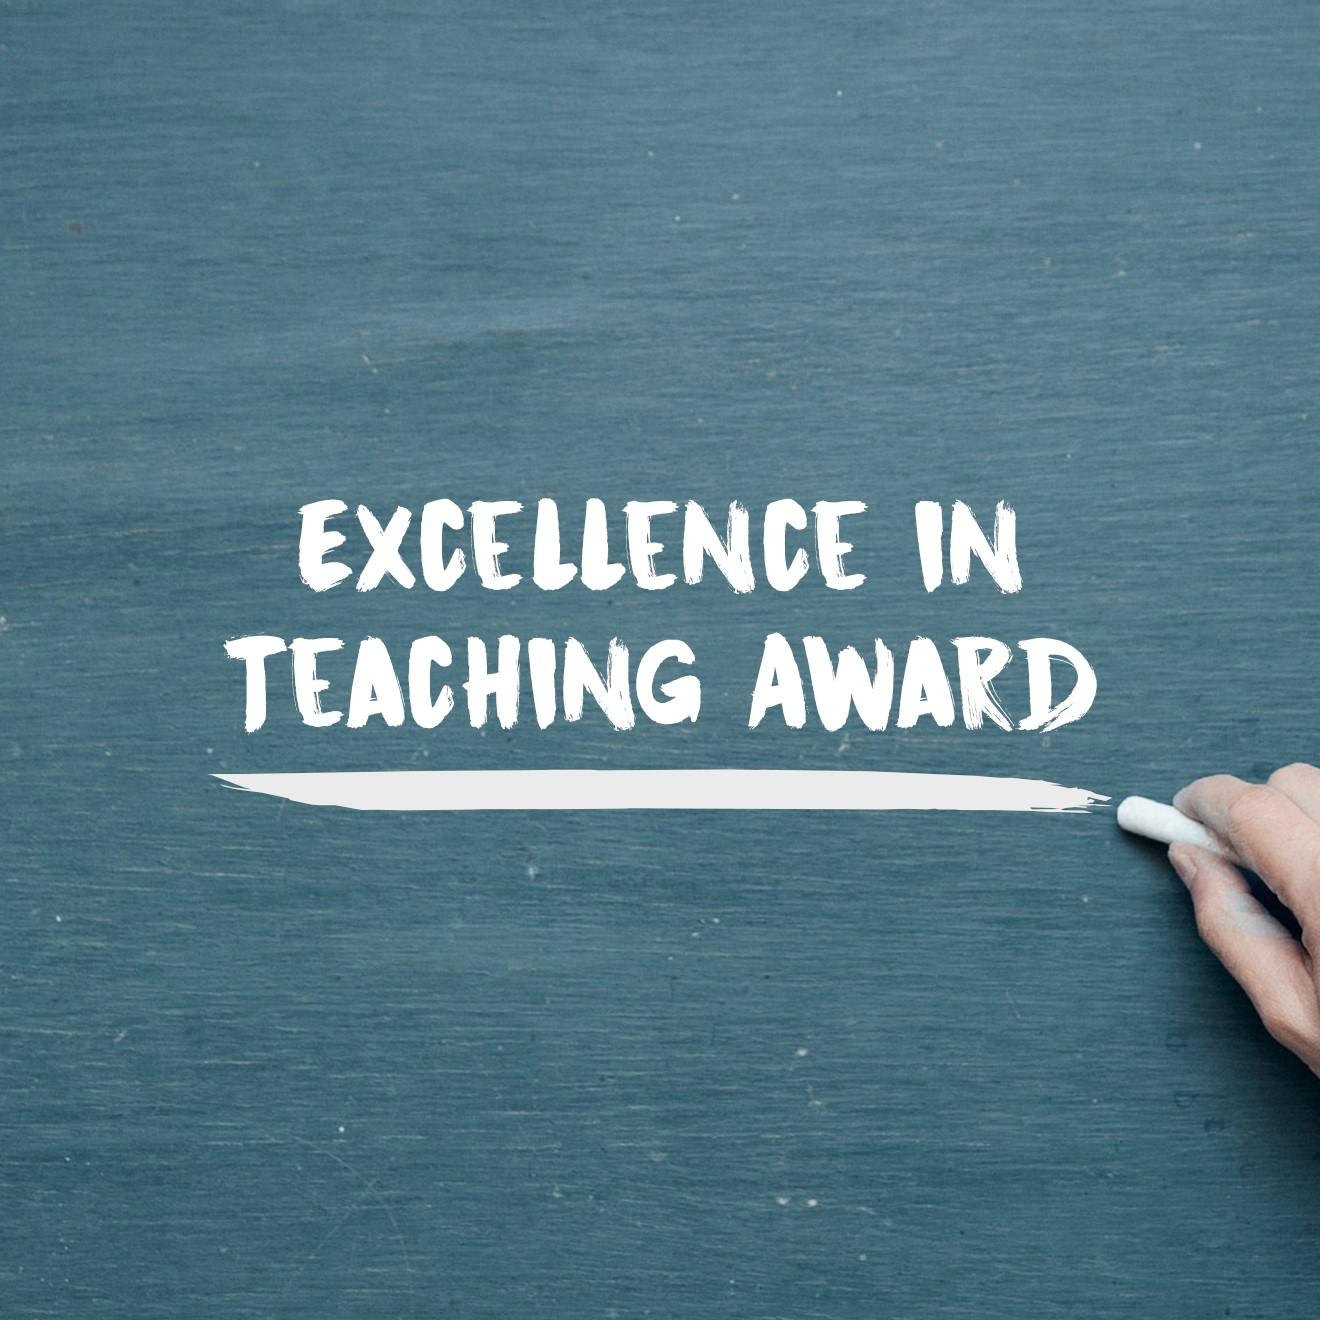 Illustration of someone writing on a chalkboard with the words Excellence in Teaching Award